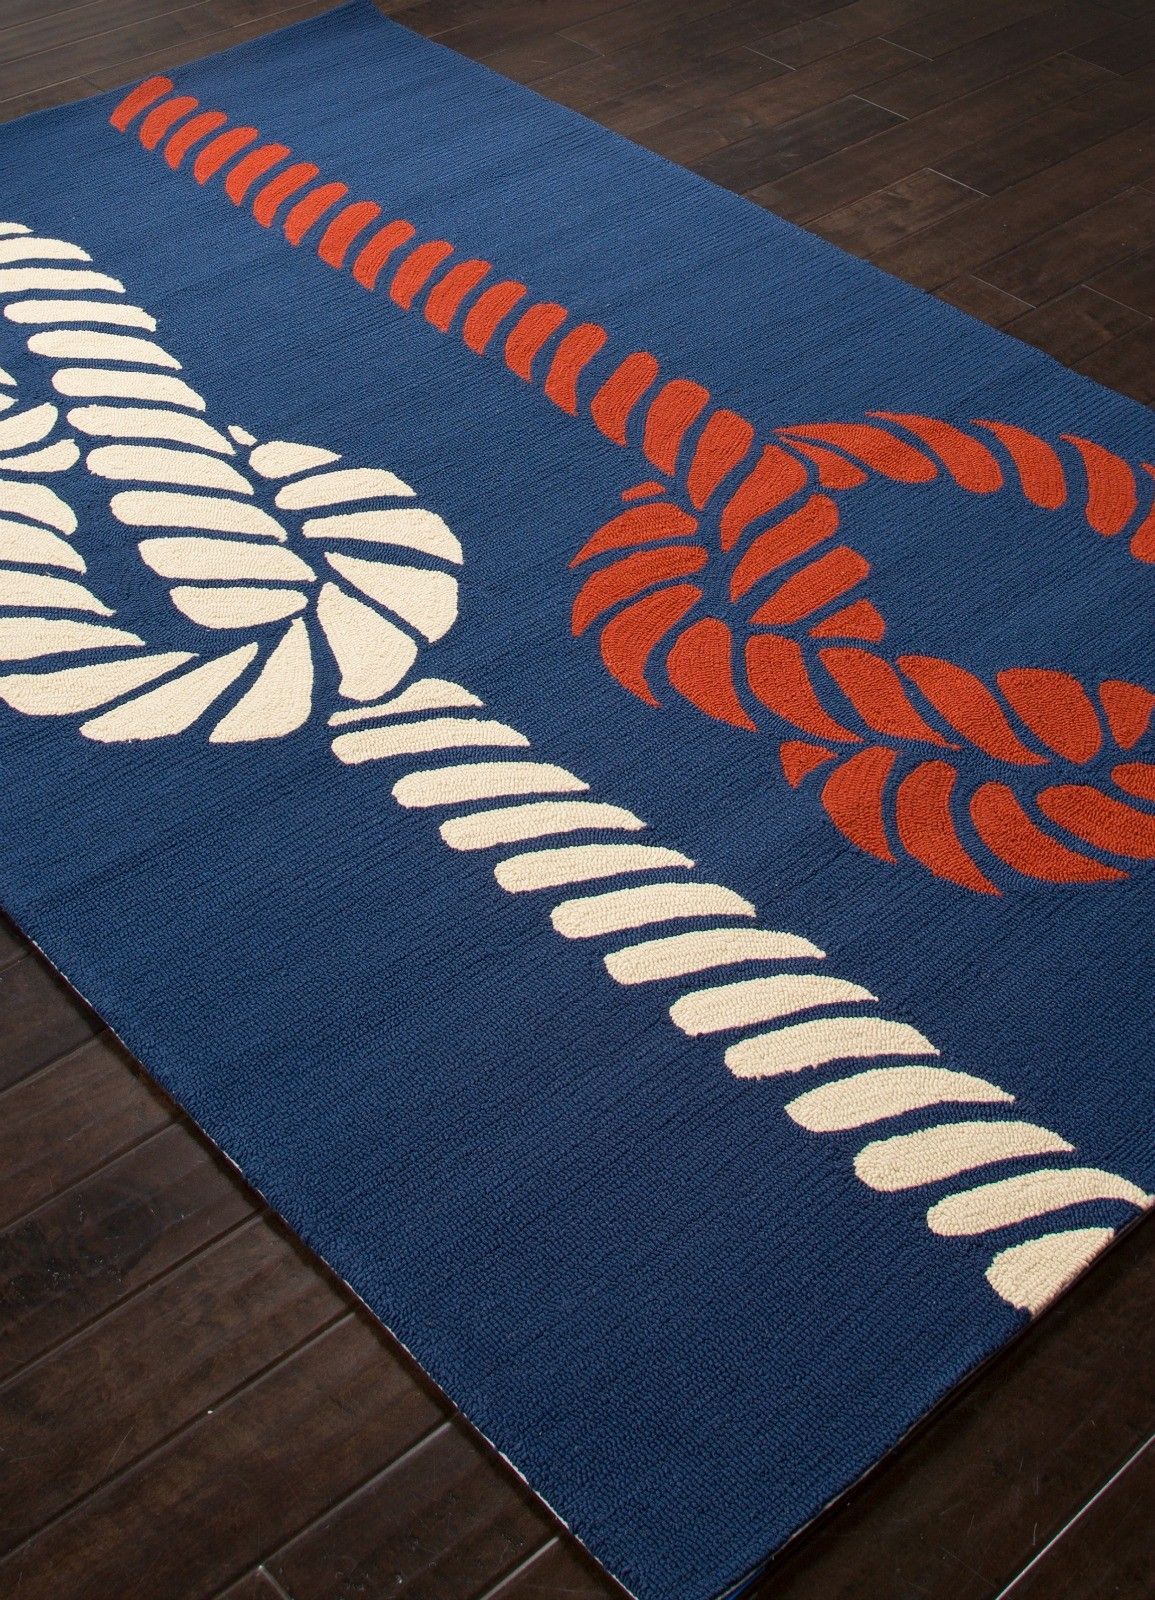 Sea Knotty Navy Blue Red And White Area Rug Area Rugs Blue Area Rugs Coastal Area Rugs